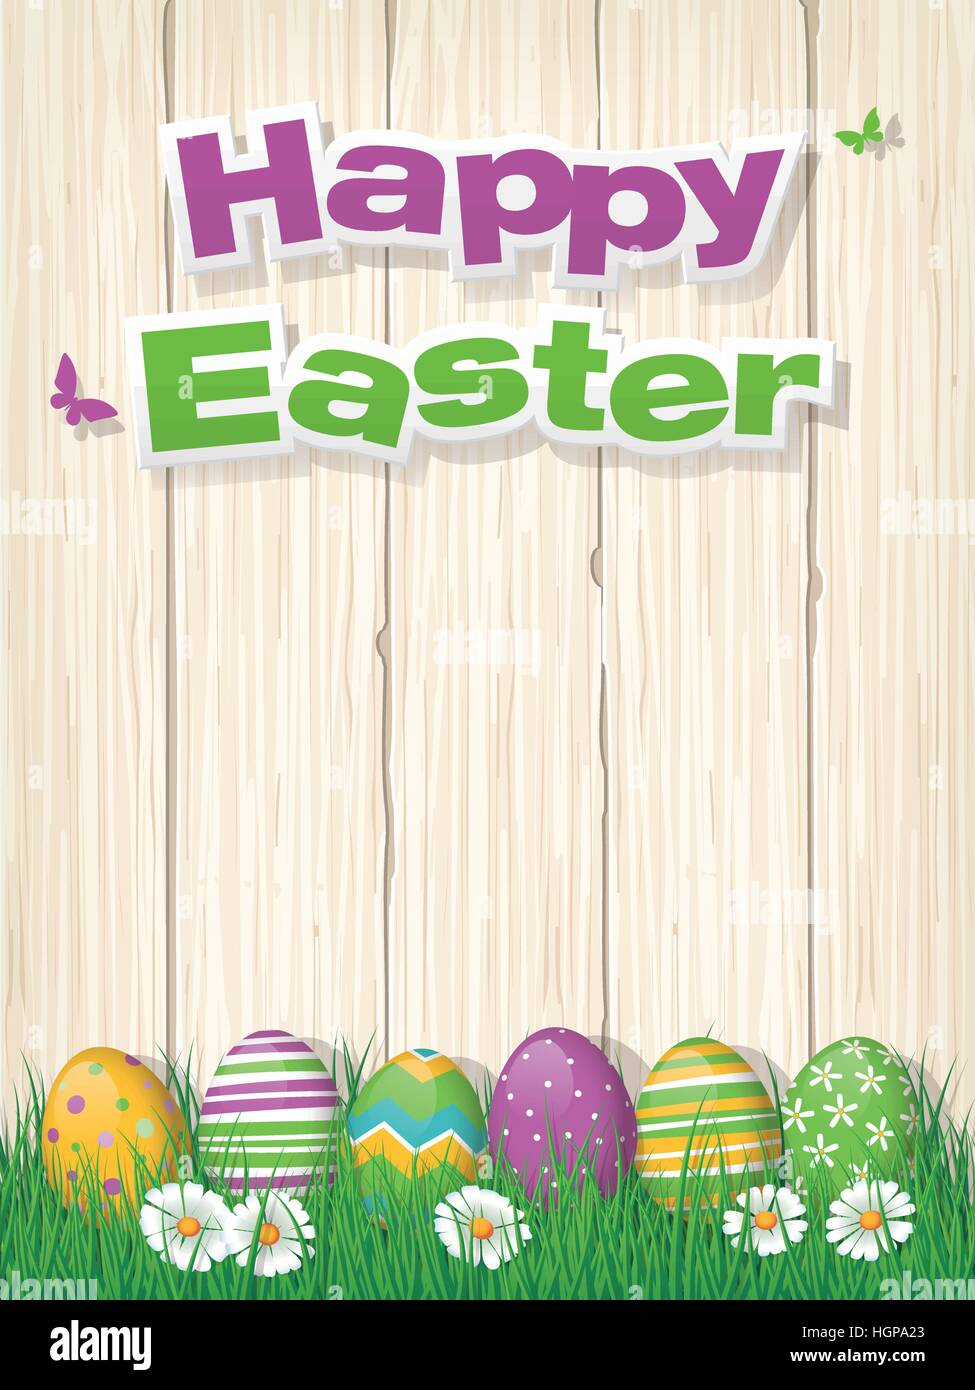 Happy easter poster or greeting card with painted easter eggs in happy easter poster or greeting card with painted easter eggs in grass and copy space on wood background vector illustration m4hsunfo